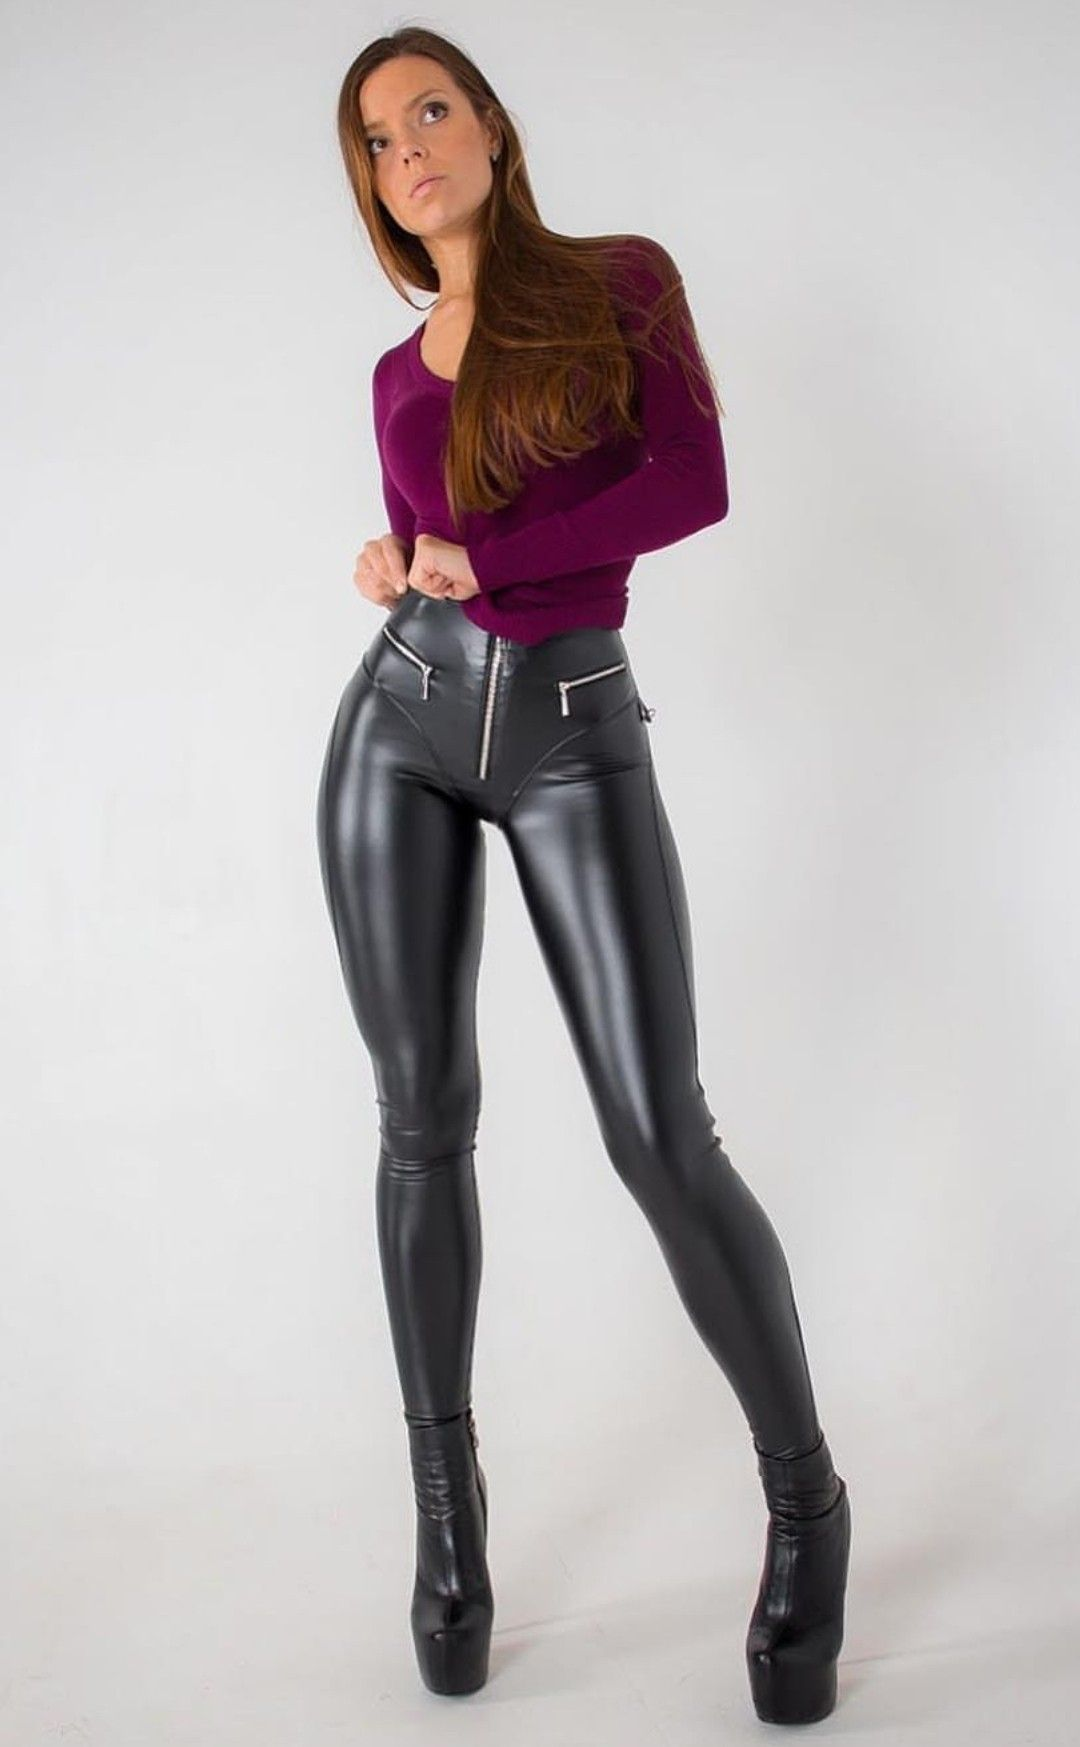 0693df179e2bc0 Shiny Leggings, Leggings Are Not Pants, Leather Pants Outfit, Leather  Trousers, Leather